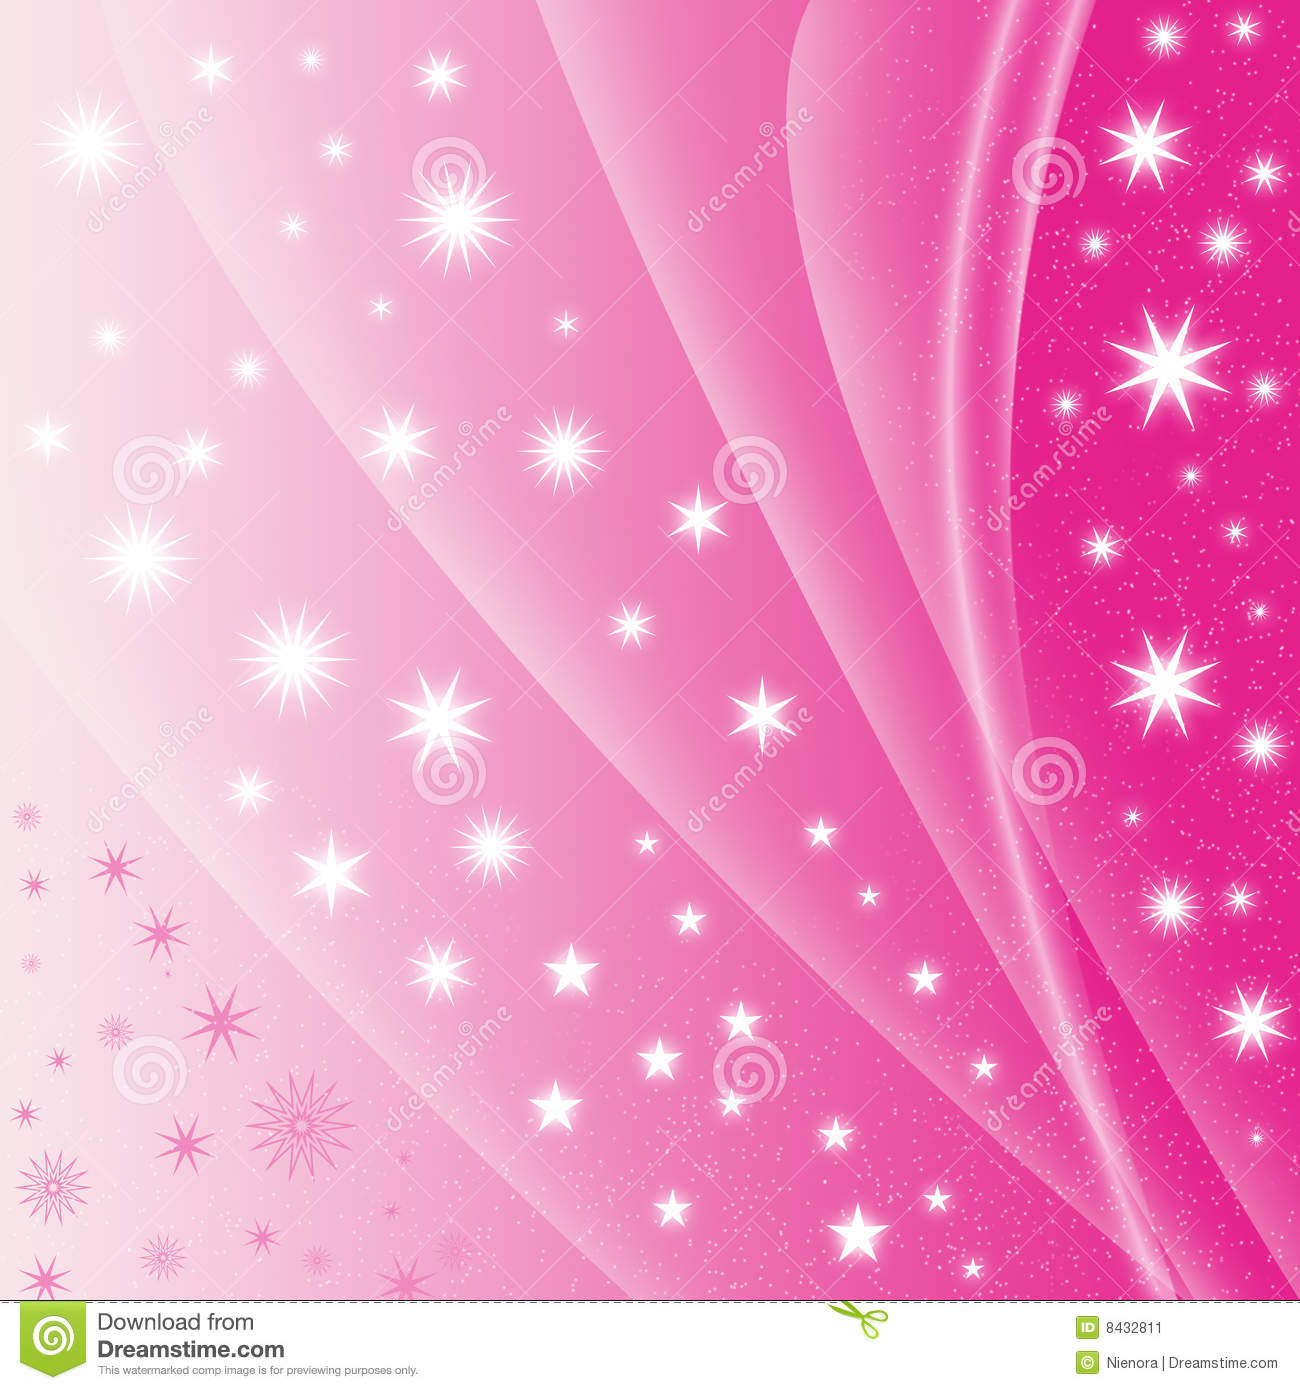 light pink star wallpaper - photo #13